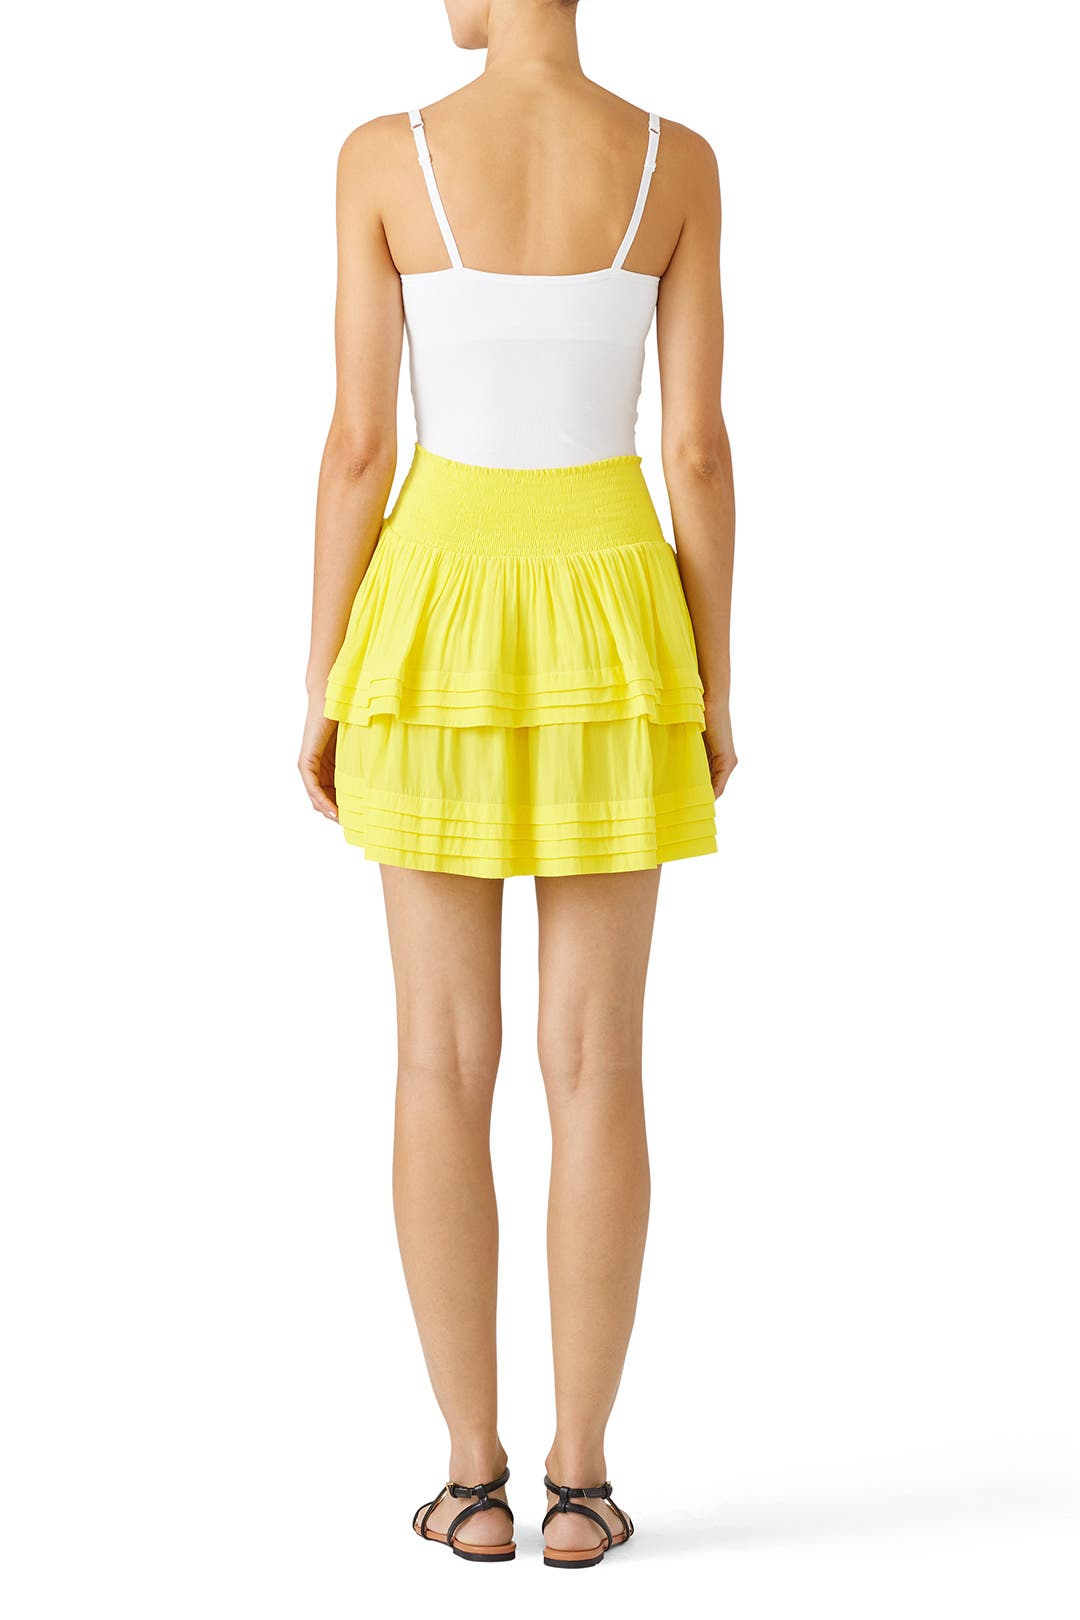 77349b533bc5e Yellow Lilo Skirt by Ramy Brook for $50 | Rent the Runway